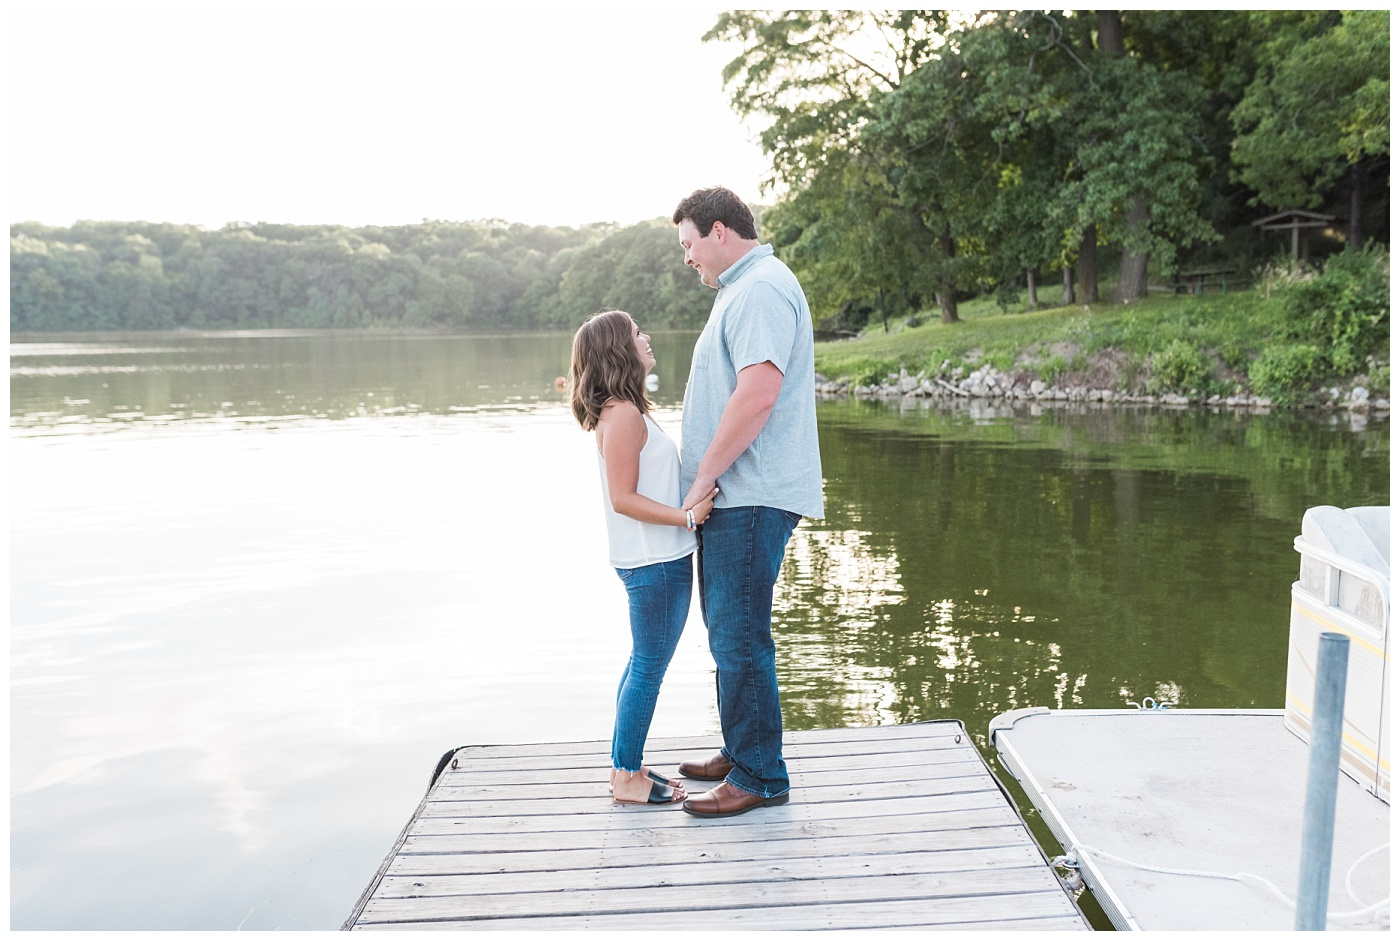 Stephanie Marie Photography Lake McBride Engagement Session Dubuque Iowa City Wedding Photographer Morgan Lucas_0005-1.jpg